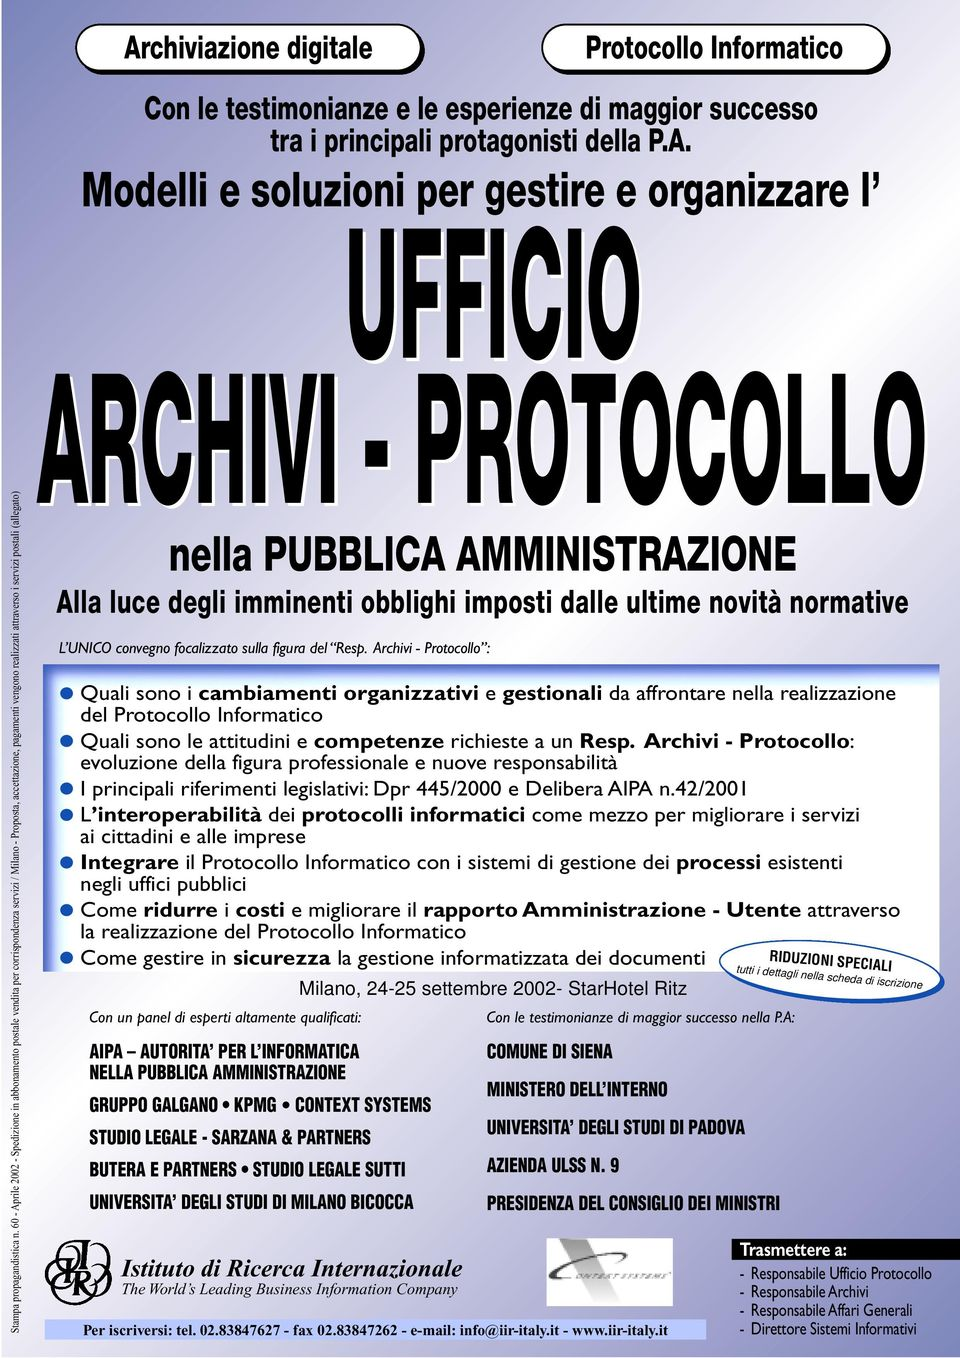 Archiviazione digitale Istituto di Ricerca Internazionale The World s Leading Business Information Company Per iscriversi: tel. 02.83847627 - fax 02.83847262 - e-mail: info@iir-italy.it - www.